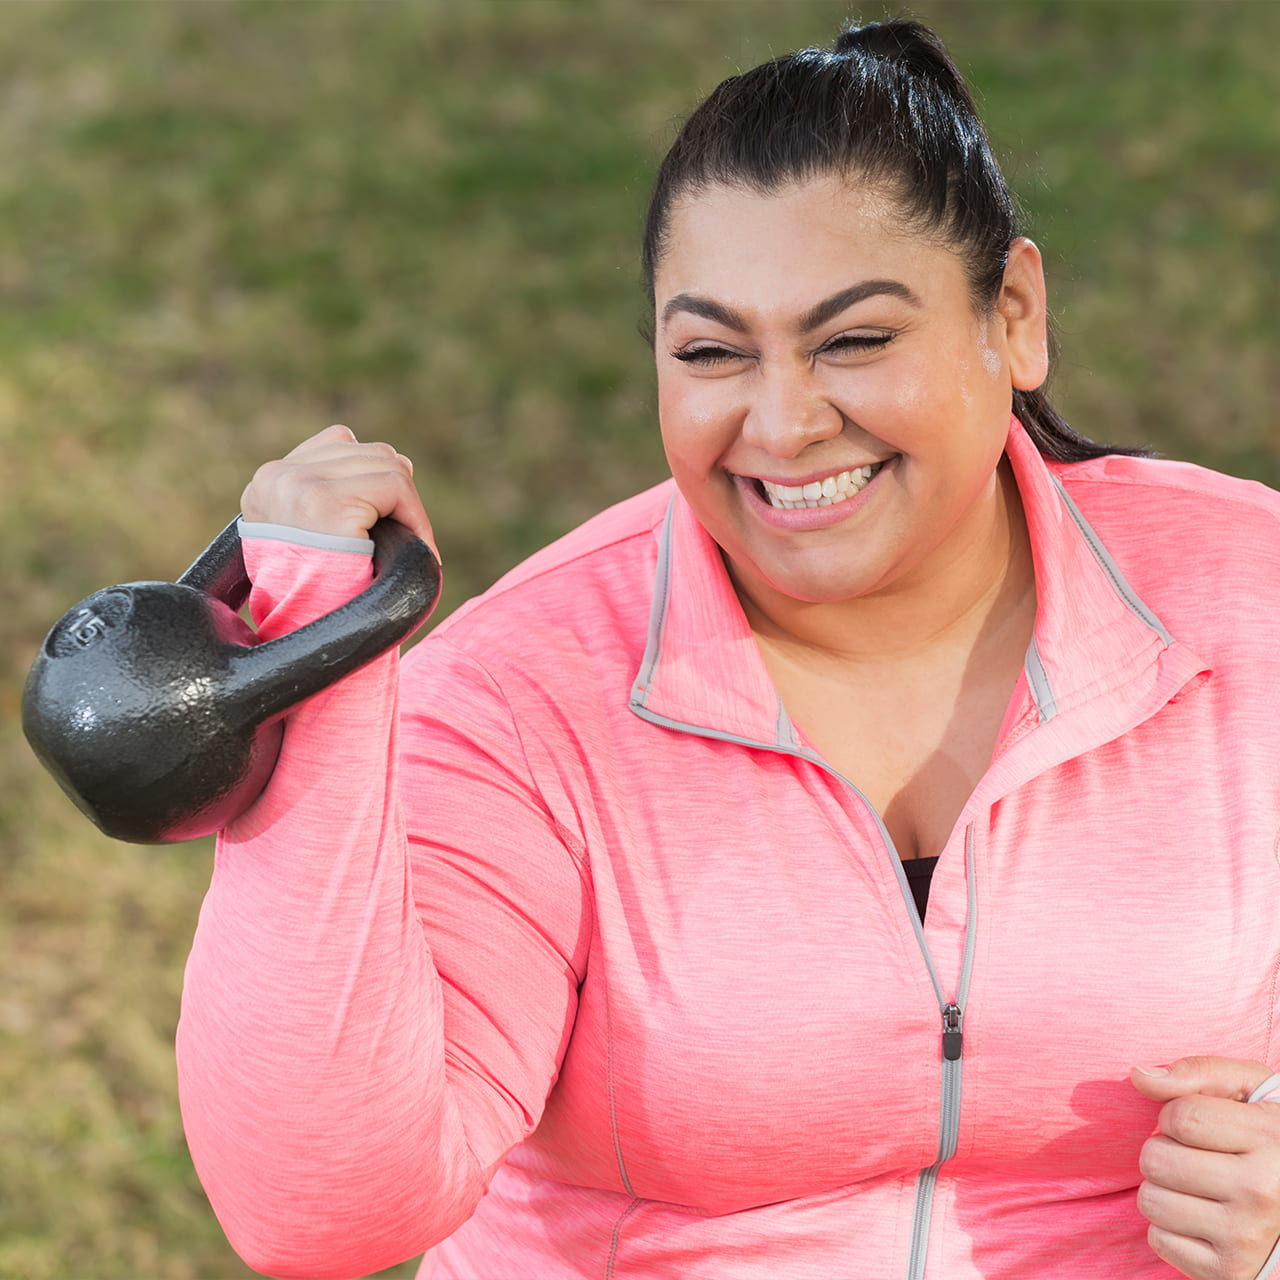 Hispanic woman exercising to lose weight with kettlebell